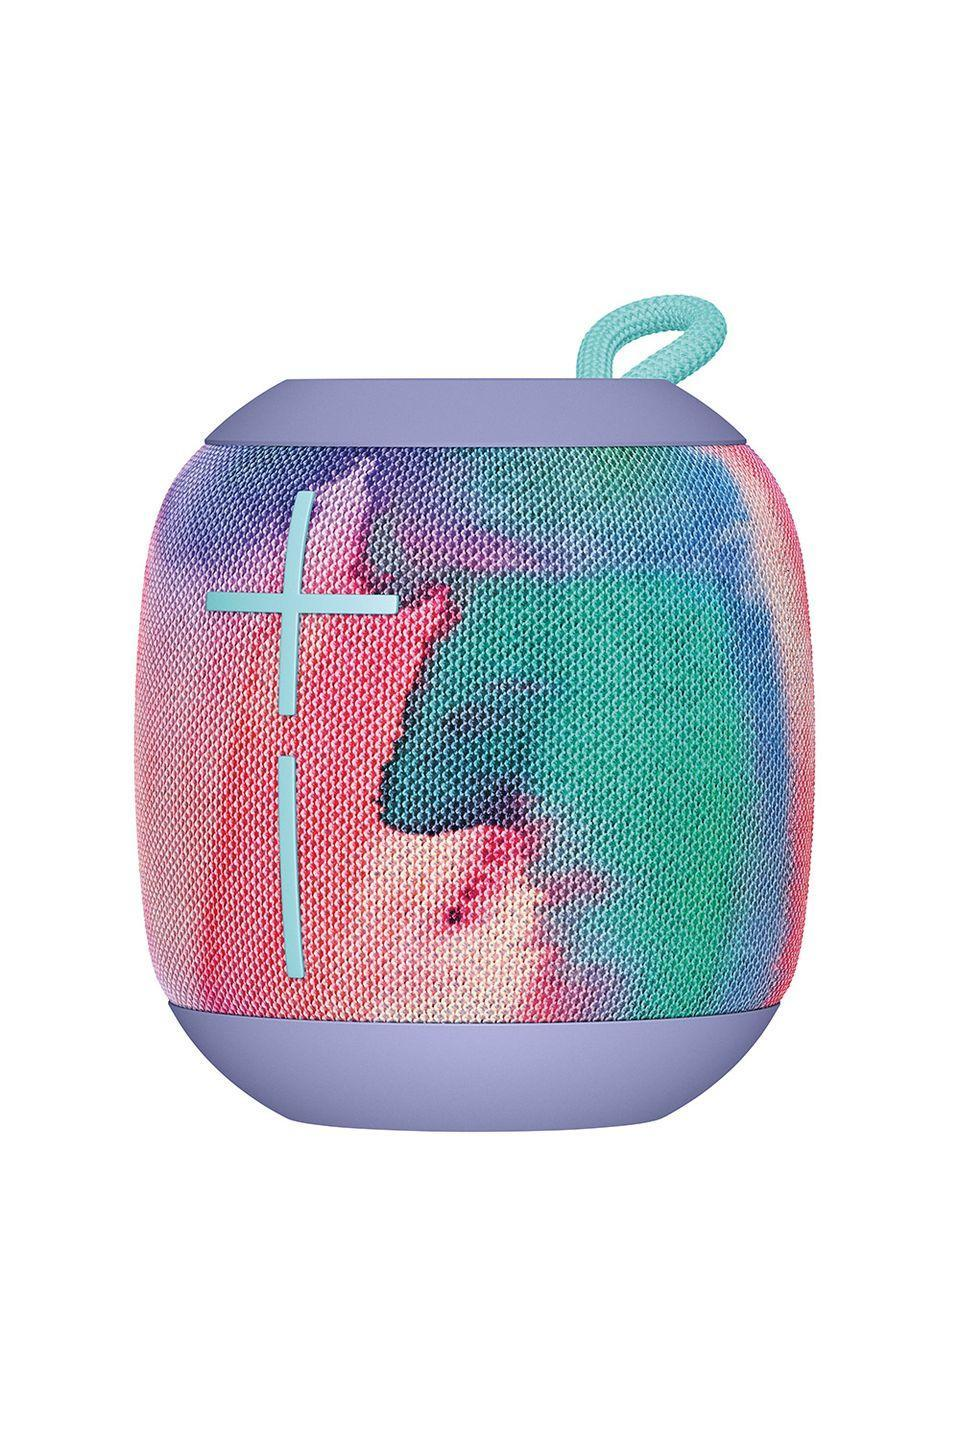 """<p>It's also perfect for blasting tunes at your end-of-summer pool dip. </p><p>Ultimate Ears Wonderboom Bluetooth Speaker, $100, <a href=""""https://www.amazon.com/?tag=syn-yahoo-20&ascsubtag=%5Bartid%7C10065.g.22117935%5Bsrc%7Cyahoo-us"""" rel=""""nofollow noopener"""" target=""""_blank"""" data-ylk=""""slk:amazon.com"""" class=""""link rapid-noclick-resp"""">amazon.com</a></p>"""